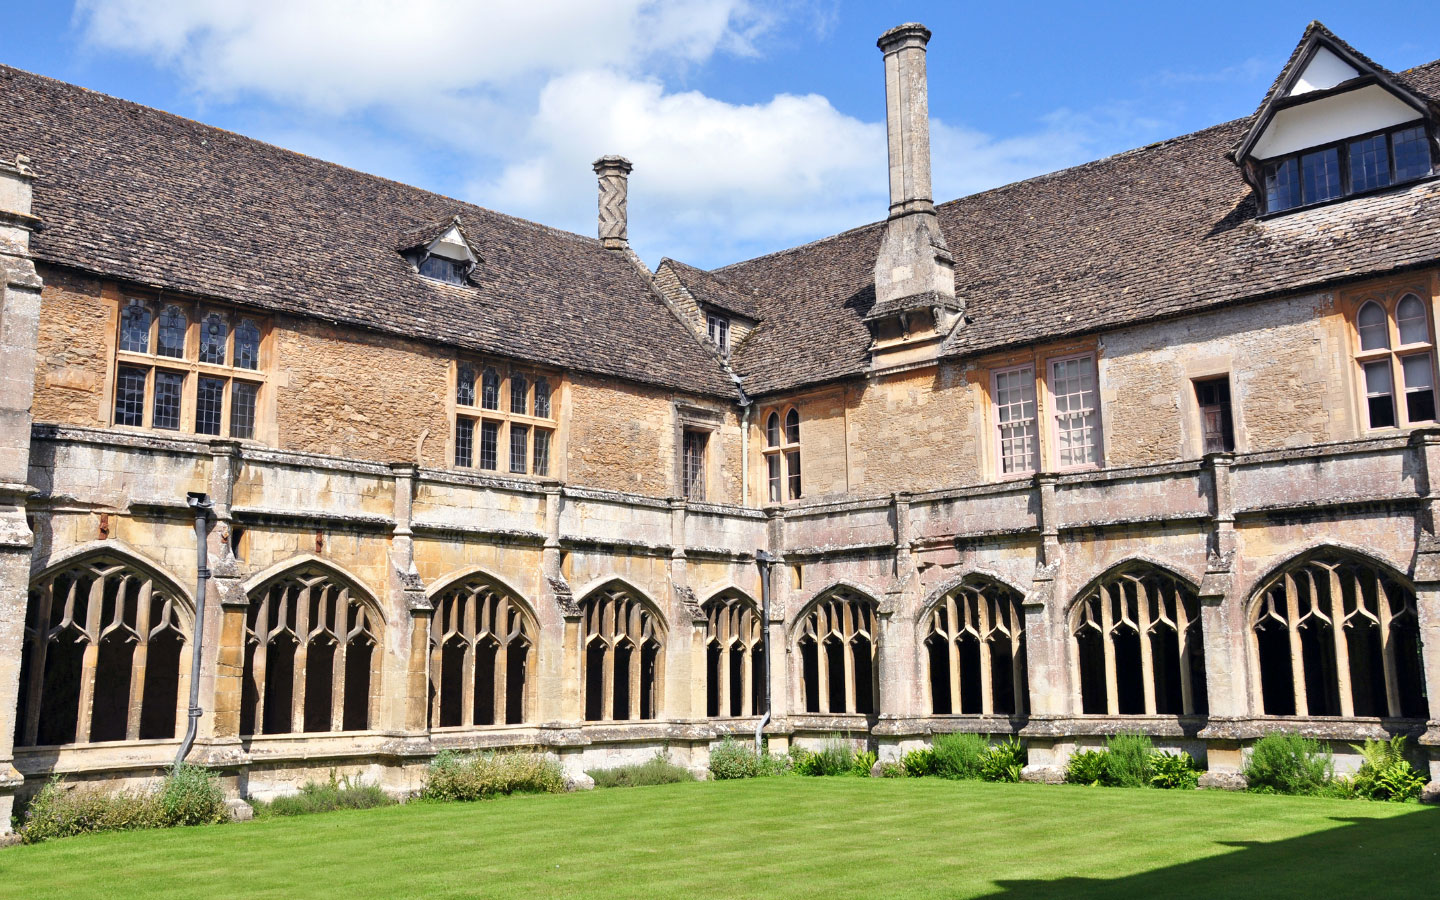 The cloisters of Lacock Abbey in Wiltshire